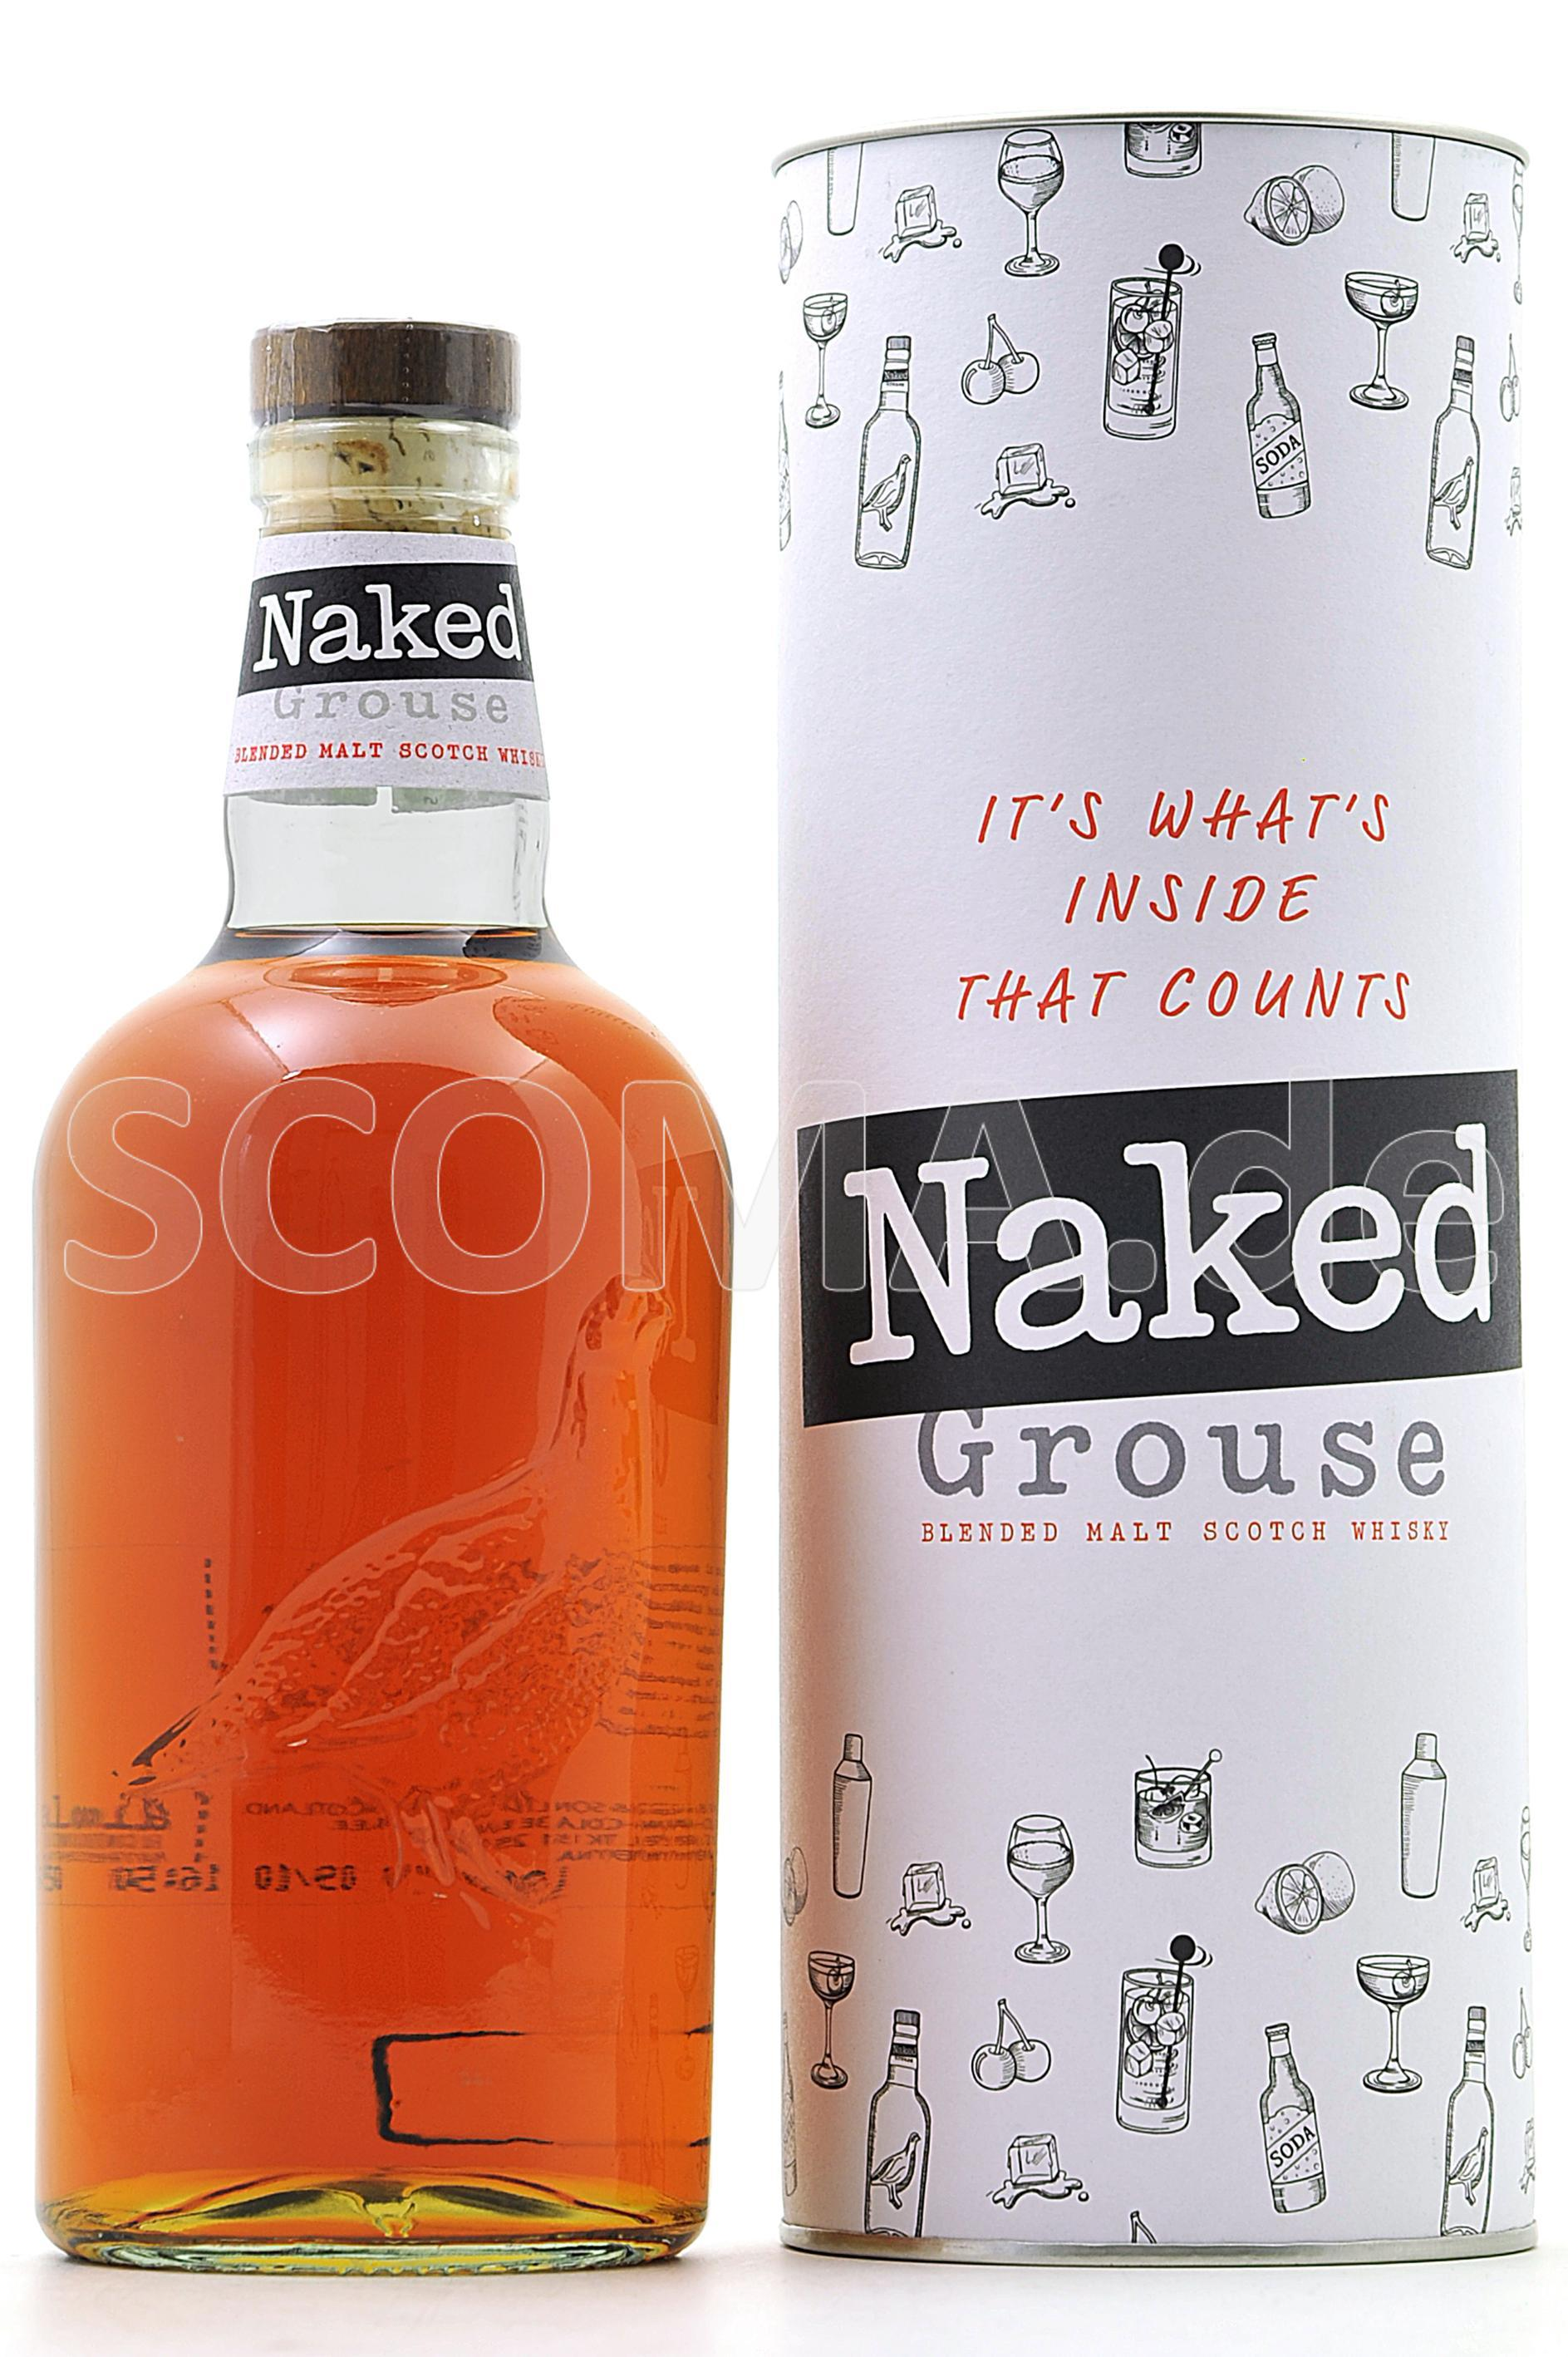 Naked Grouse with Giftpack